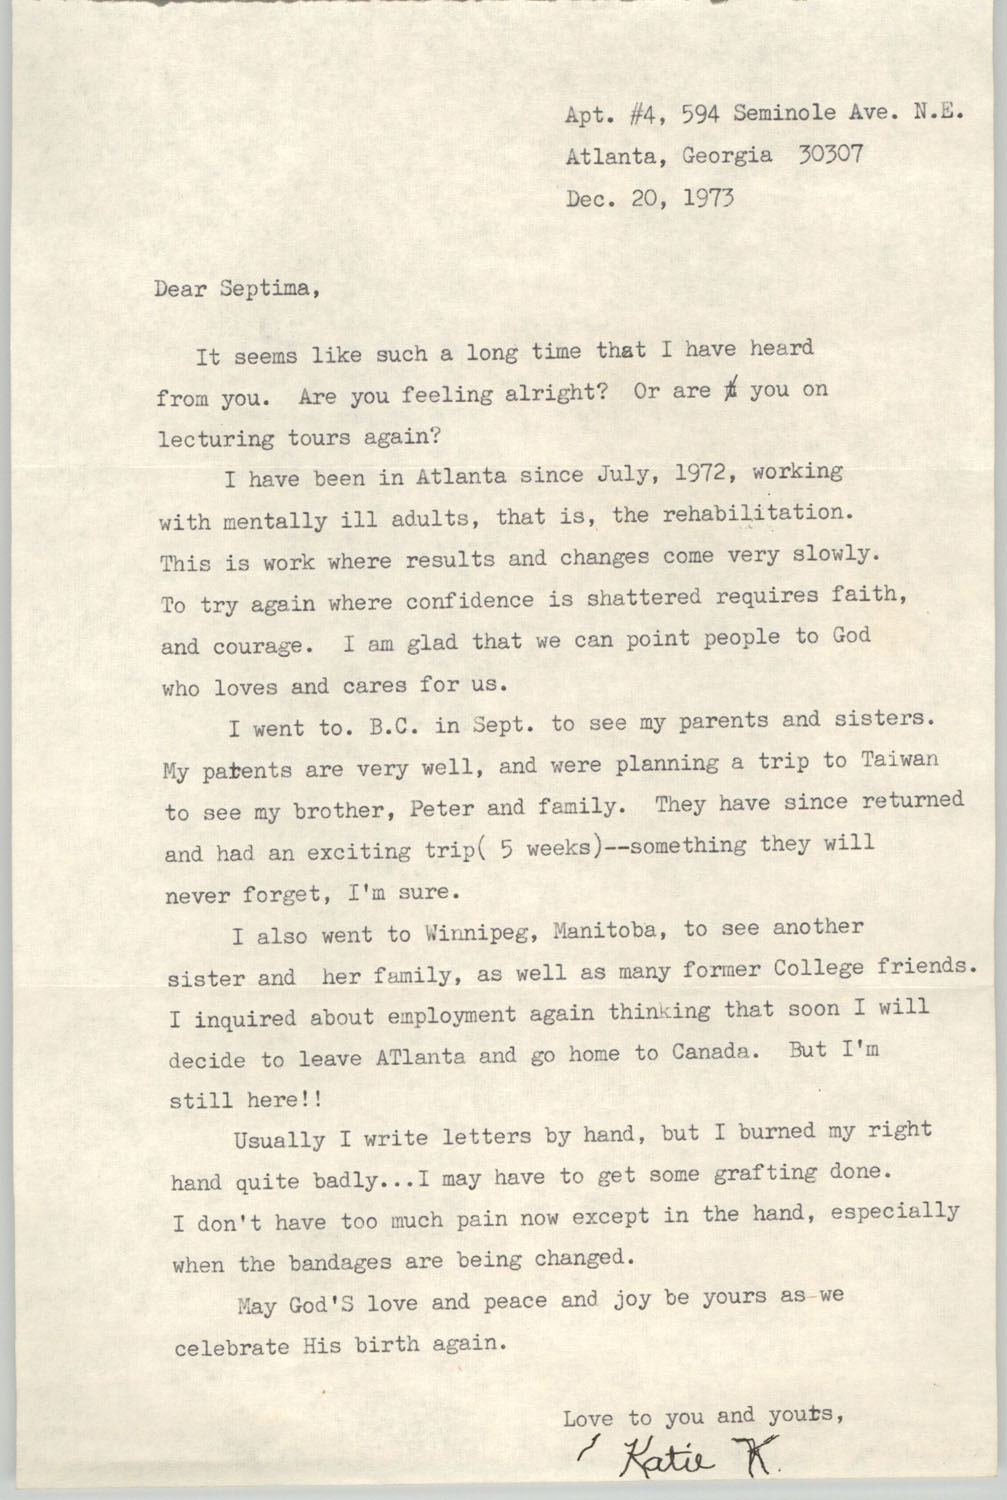 Letter from Katie K. to Septima P. Clark, December 20, 1973